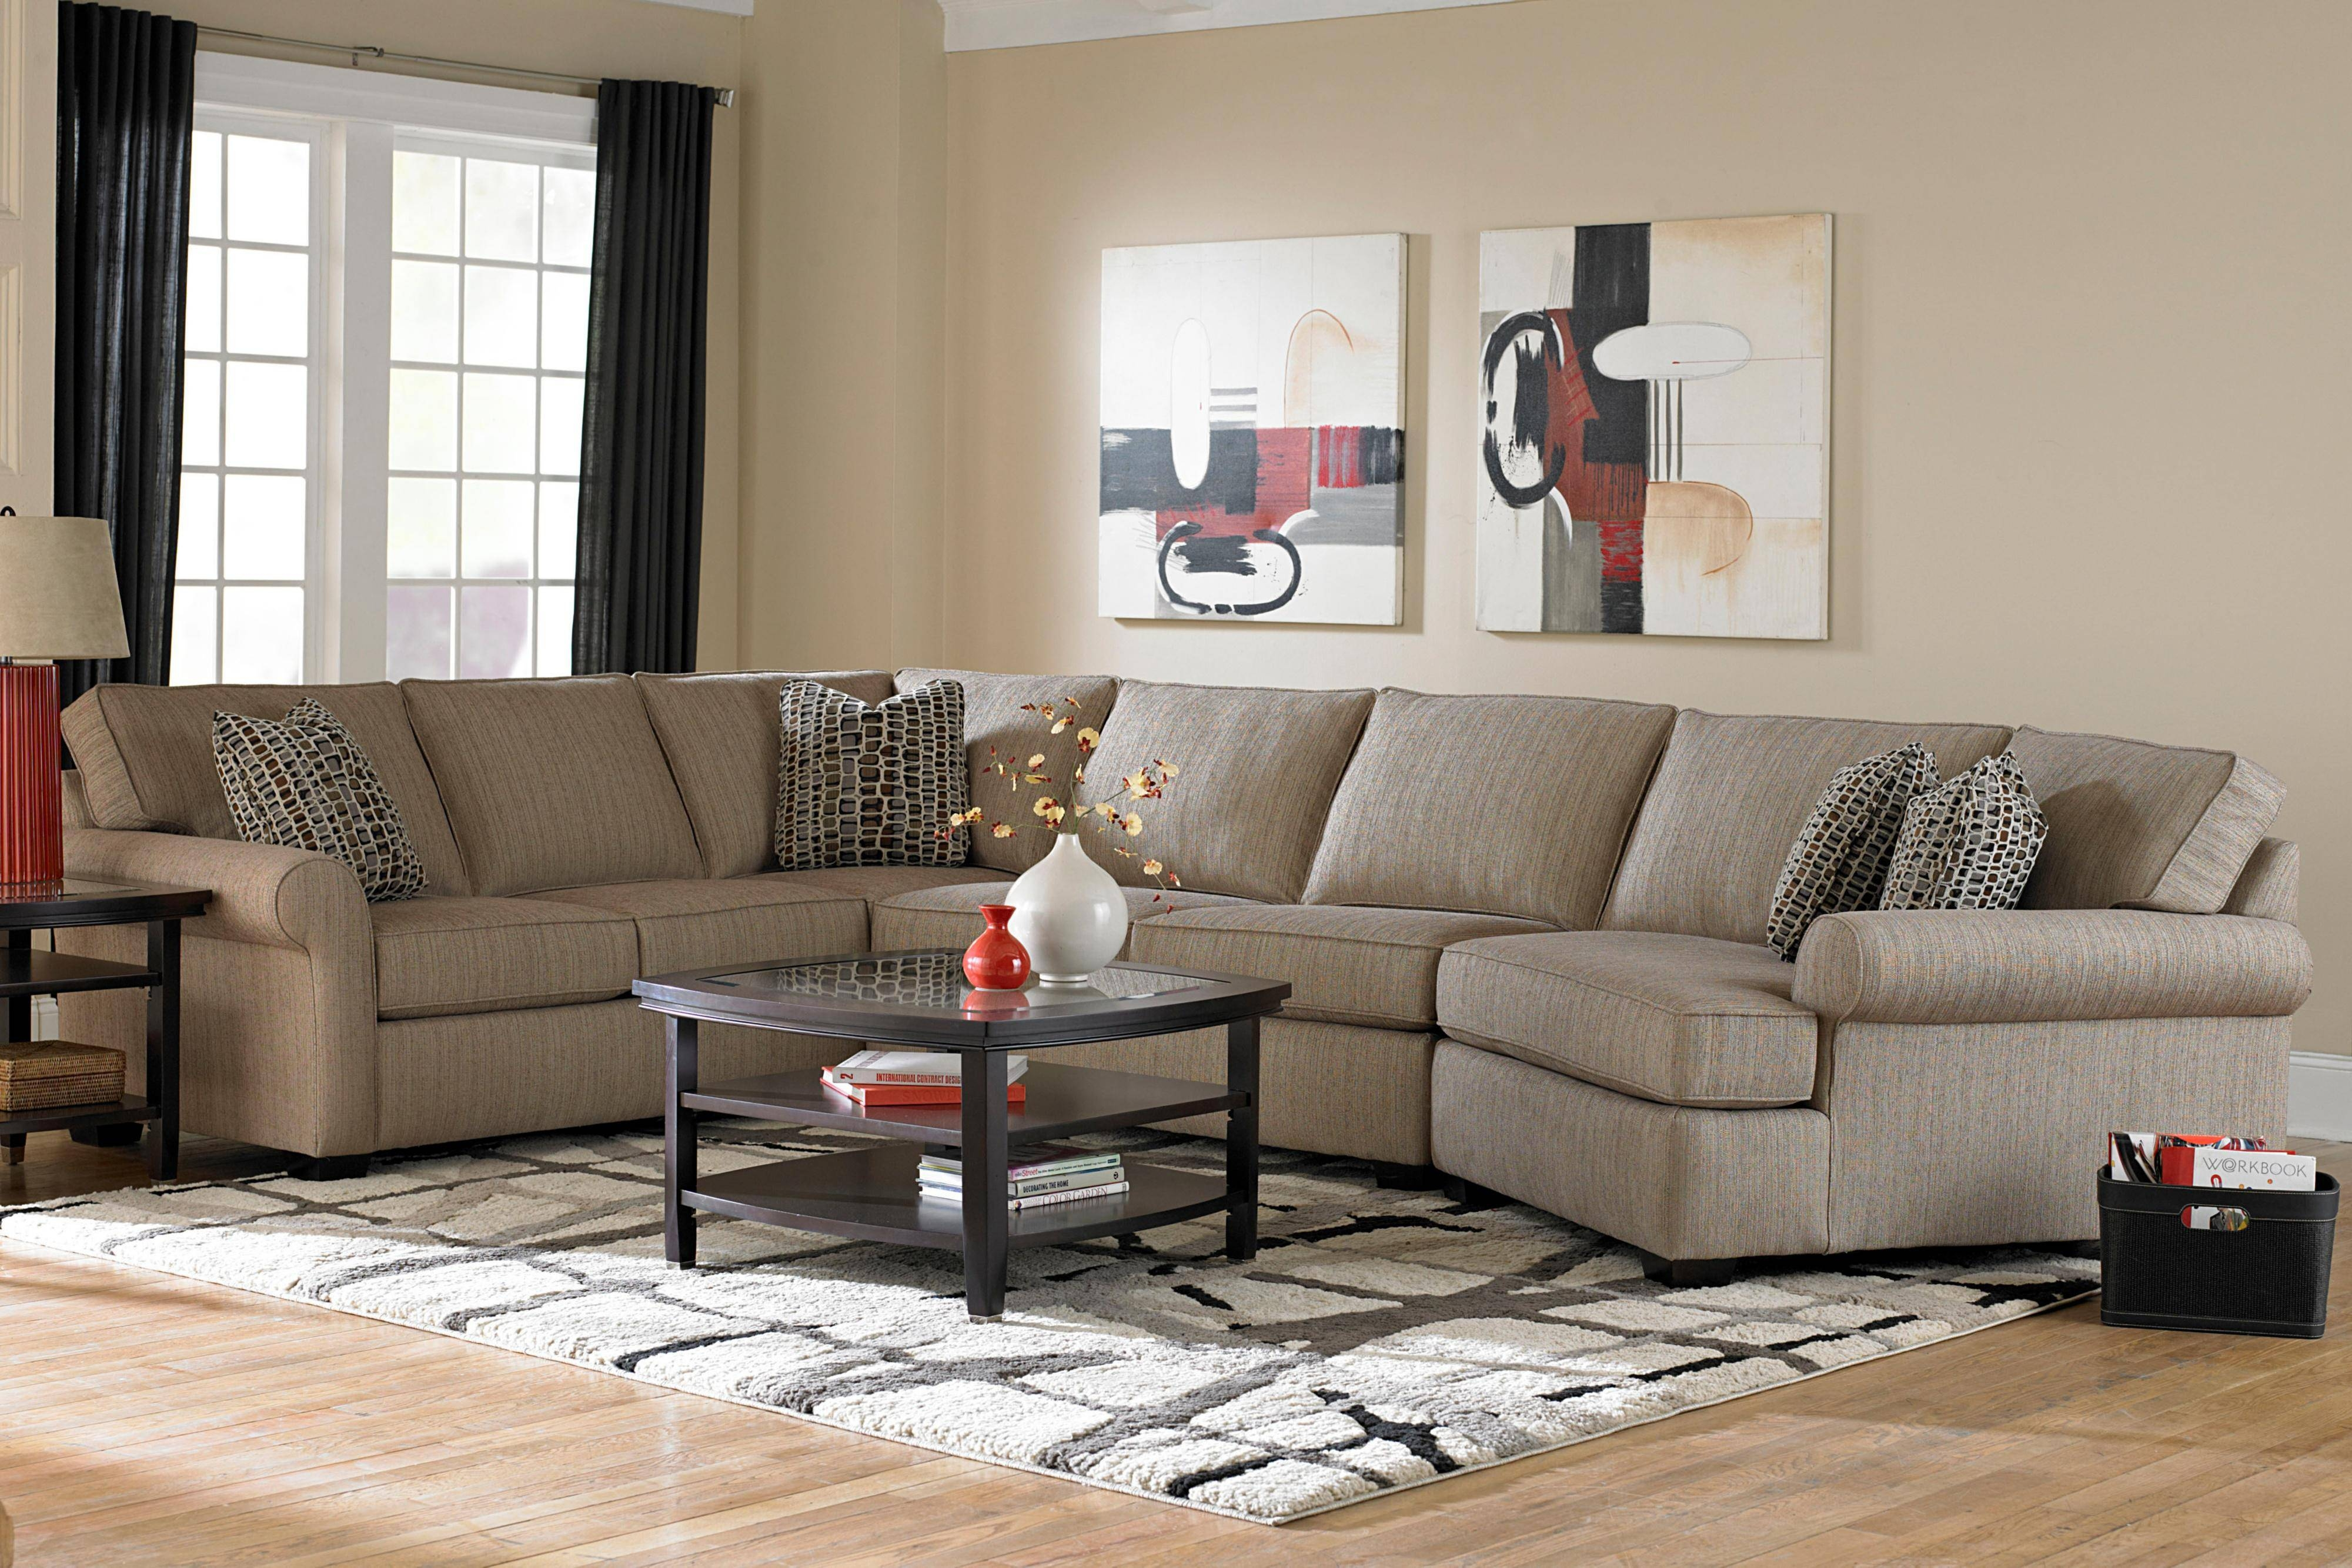 Broyhill Furniture Ethan Transitional Sectional Sofa With Right pertaining to Broyhill Sectional Sofa (Image 4 of 30)